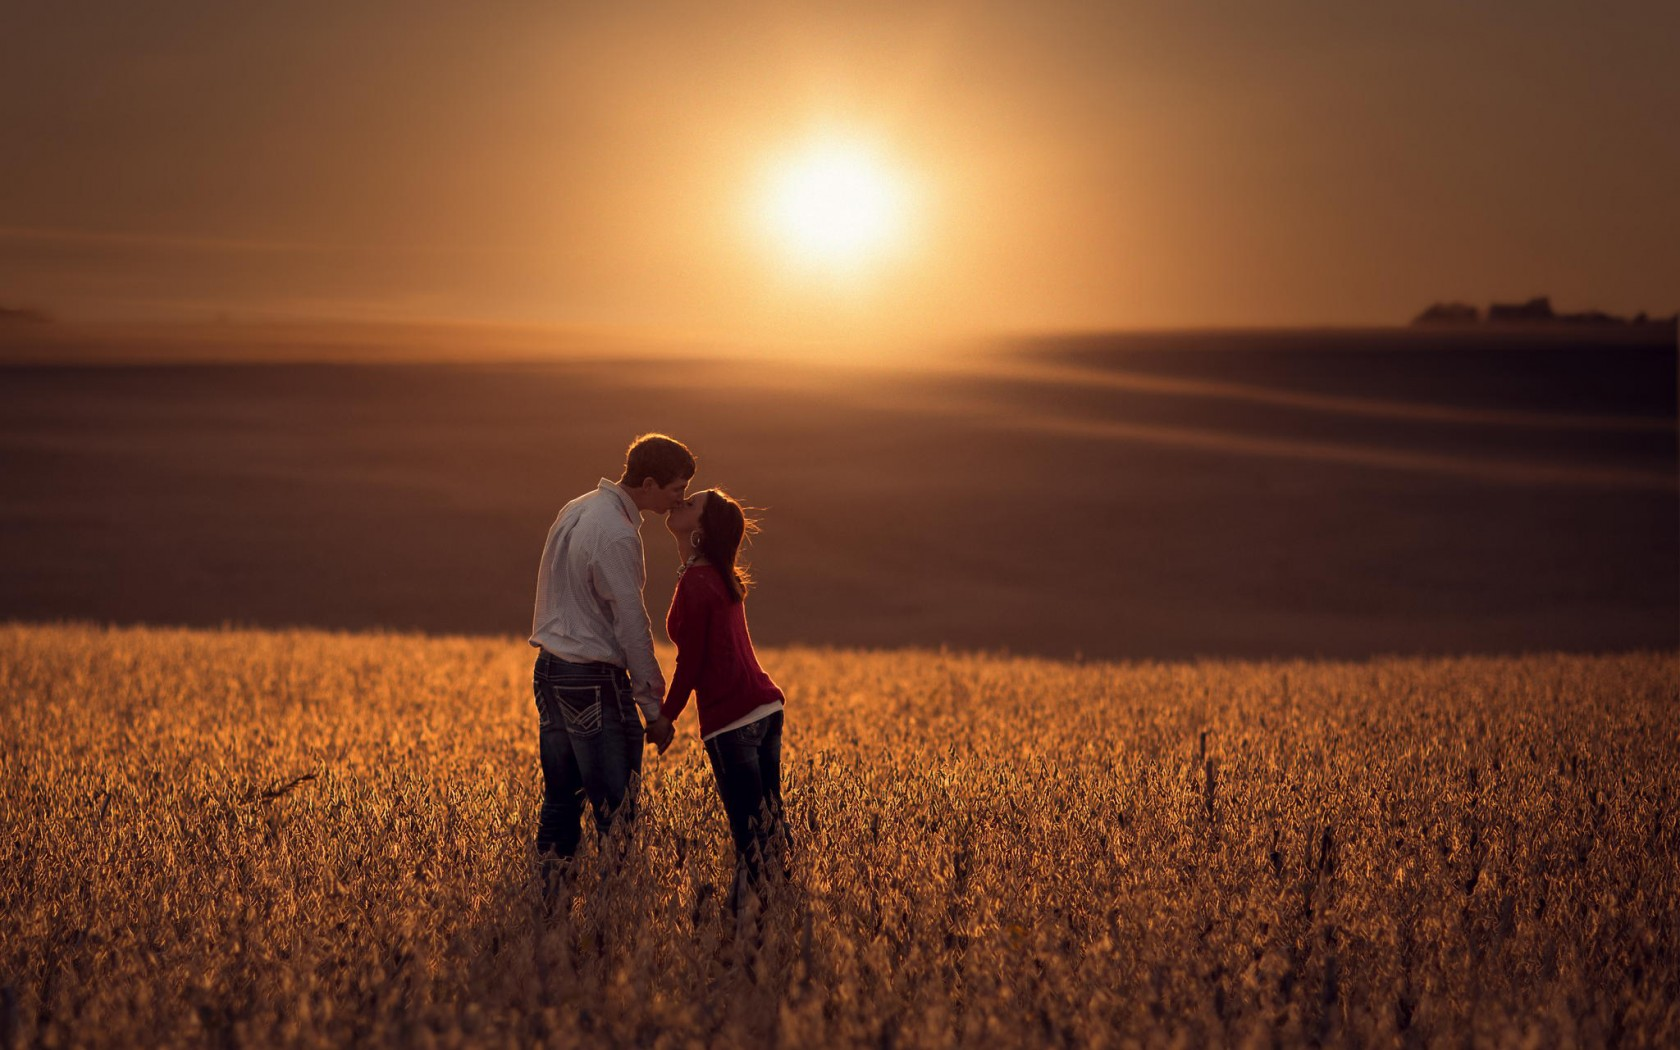 lovers kiss at sunset field